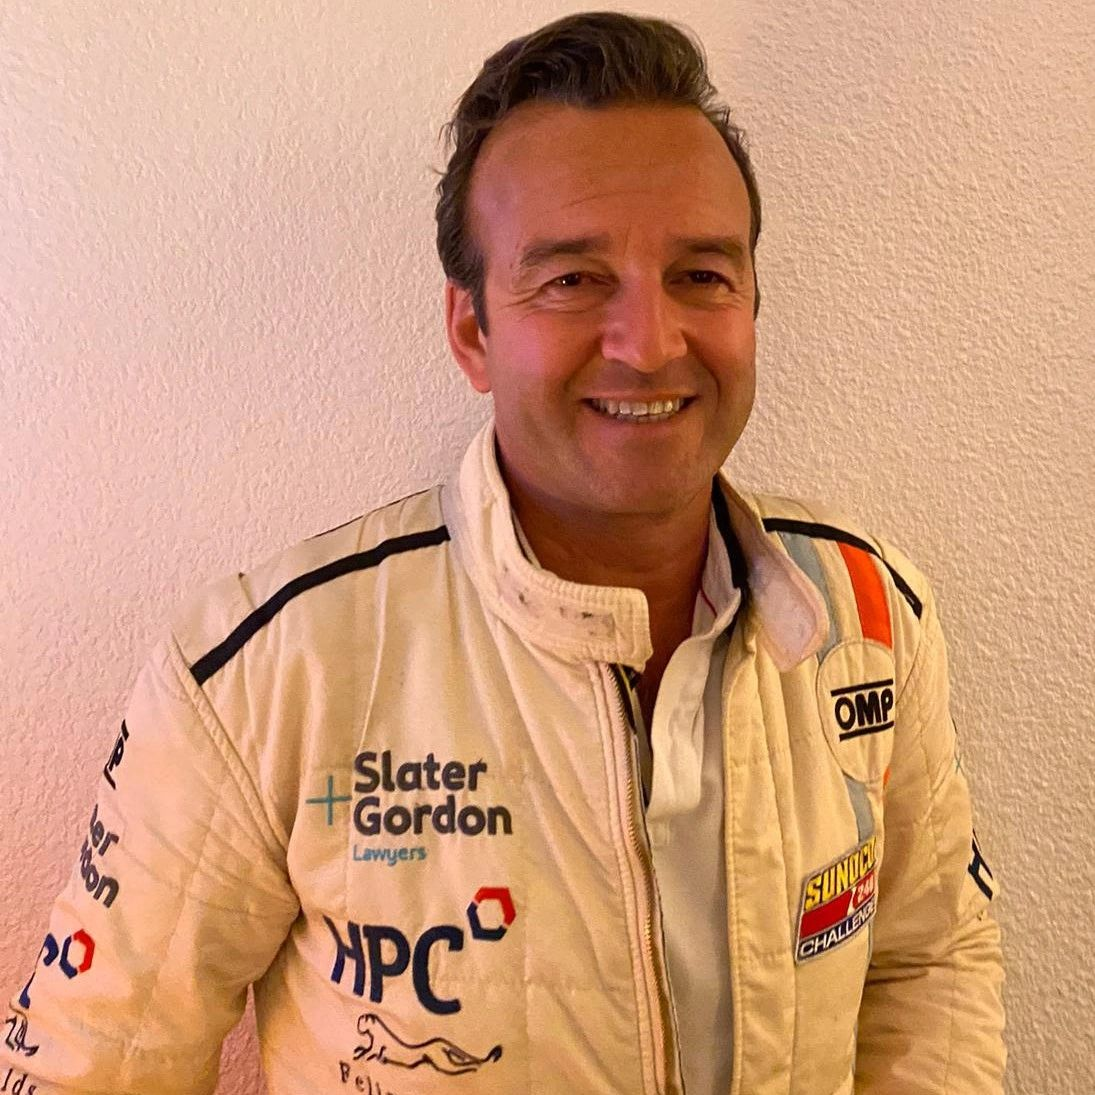 Photo of Raphael Del Sarte in his race wear as part of car 24